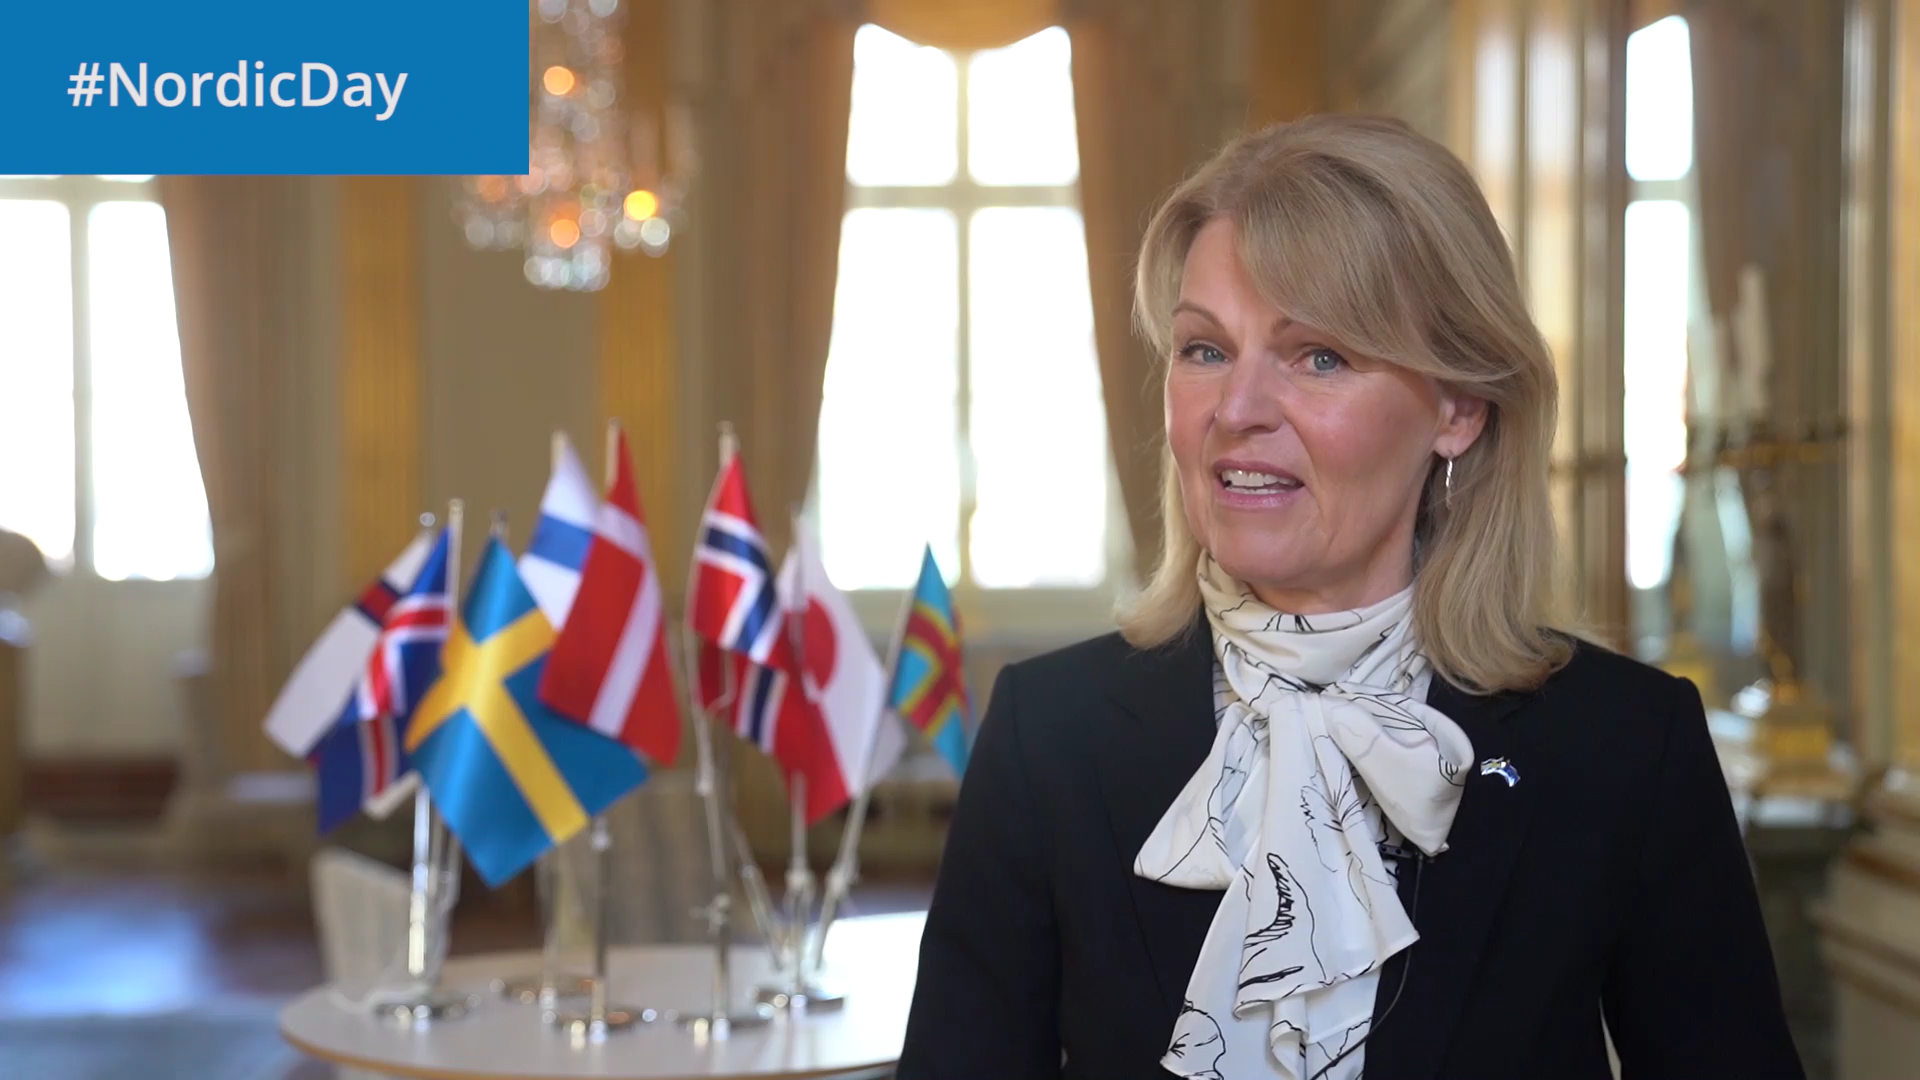 Minister for Nordic Affairs Anna Hallberg